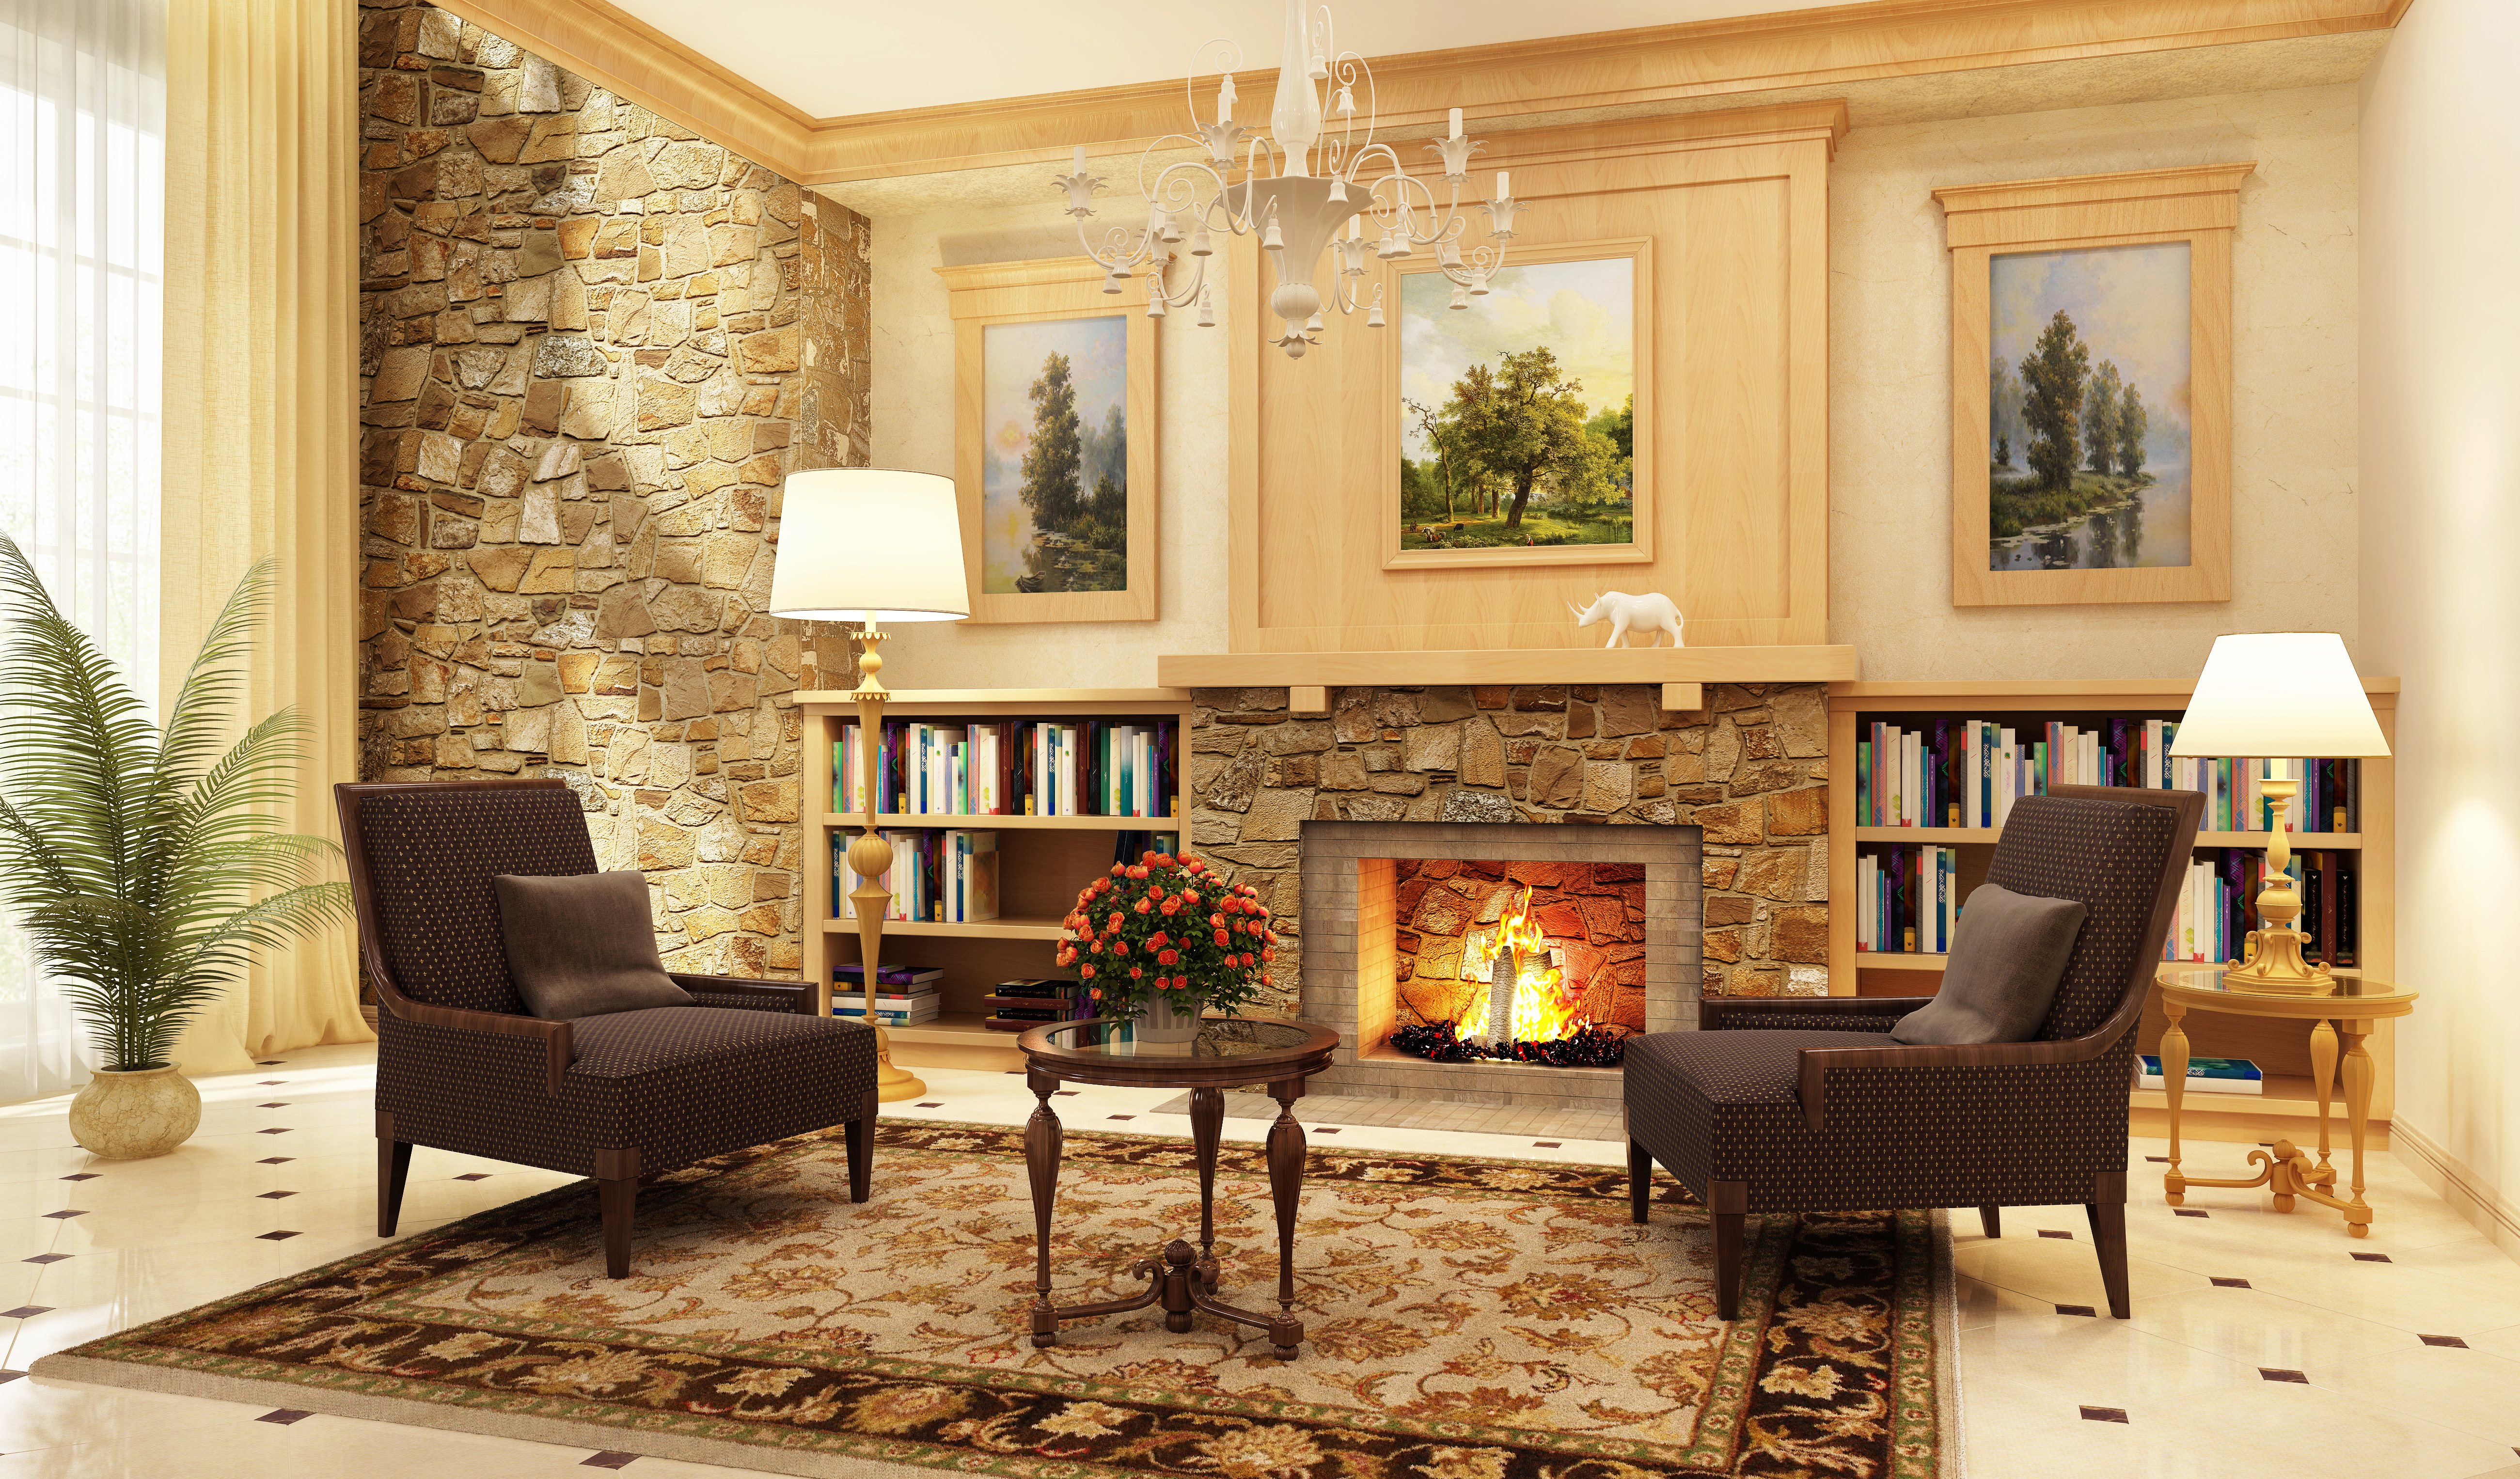 Pictures of model homes - Fireplace And Decor For Model Home